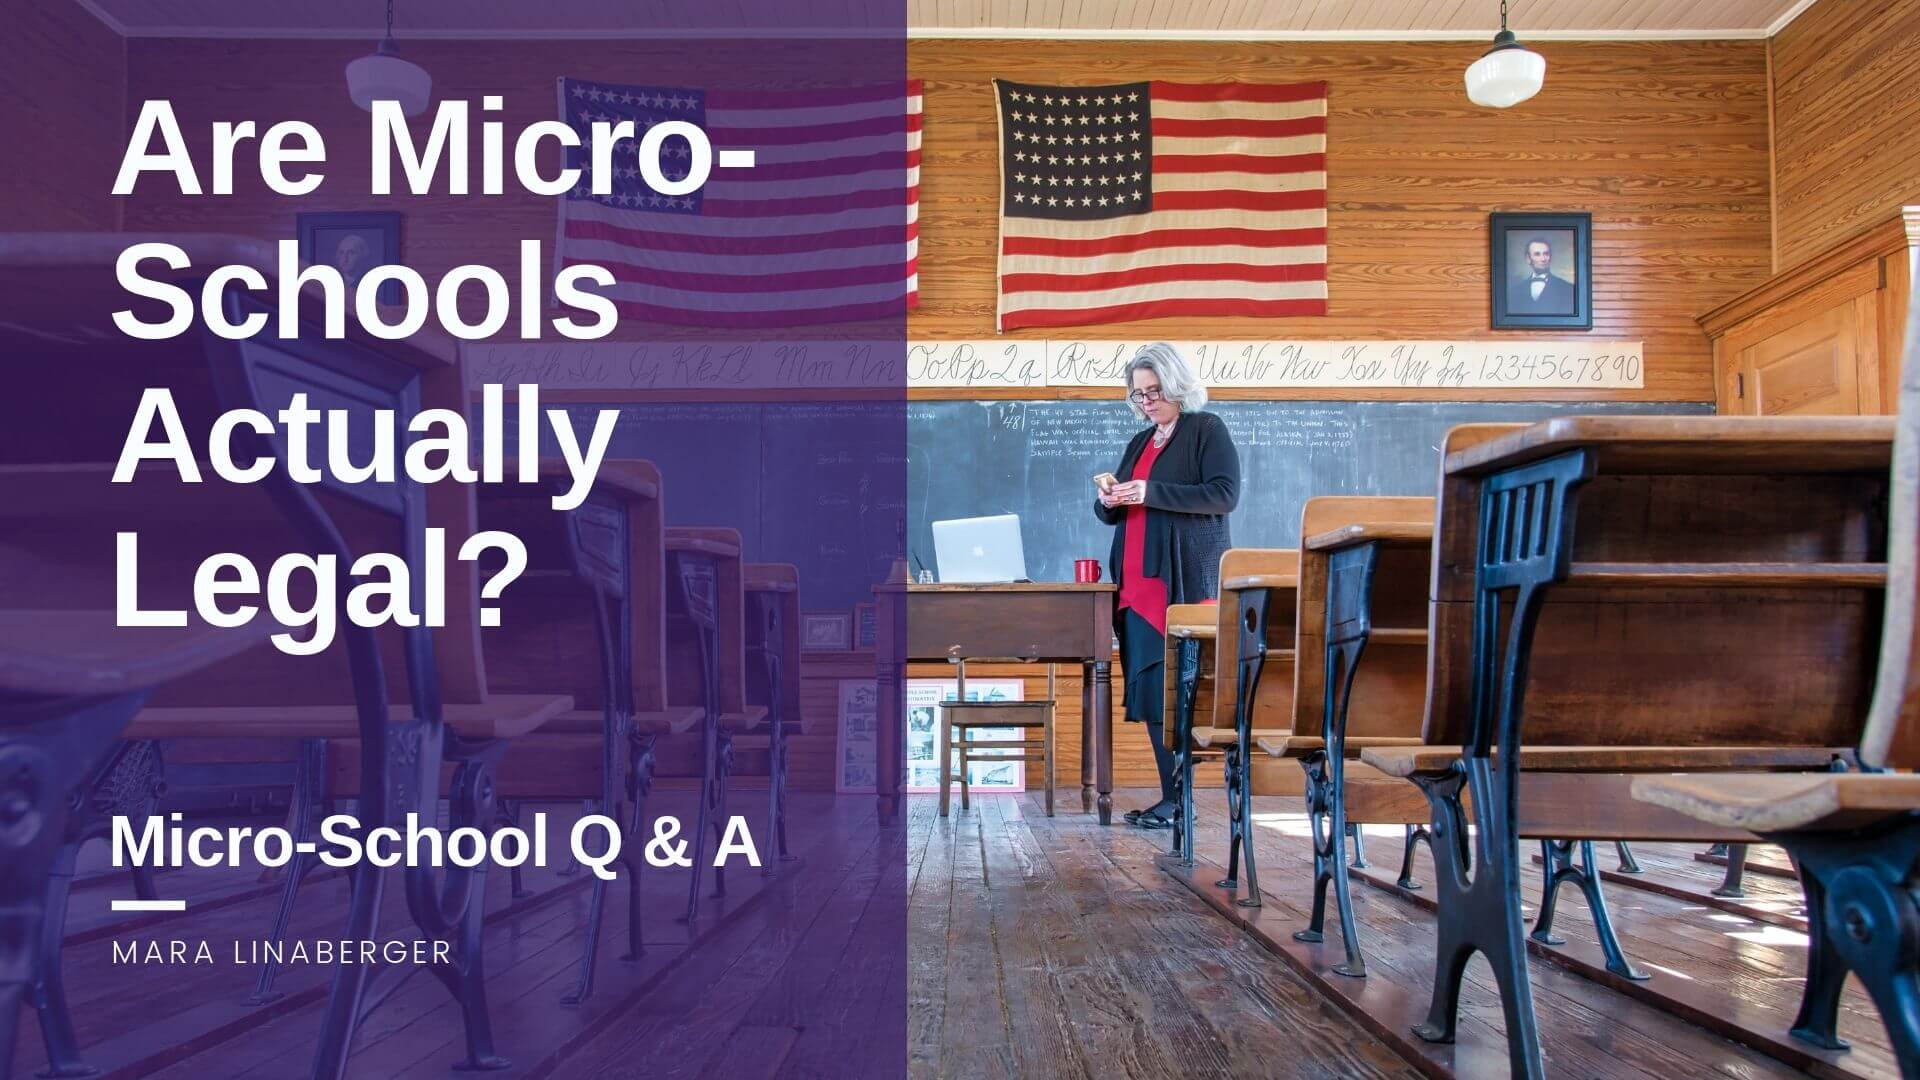 are micro-schools actually legal?